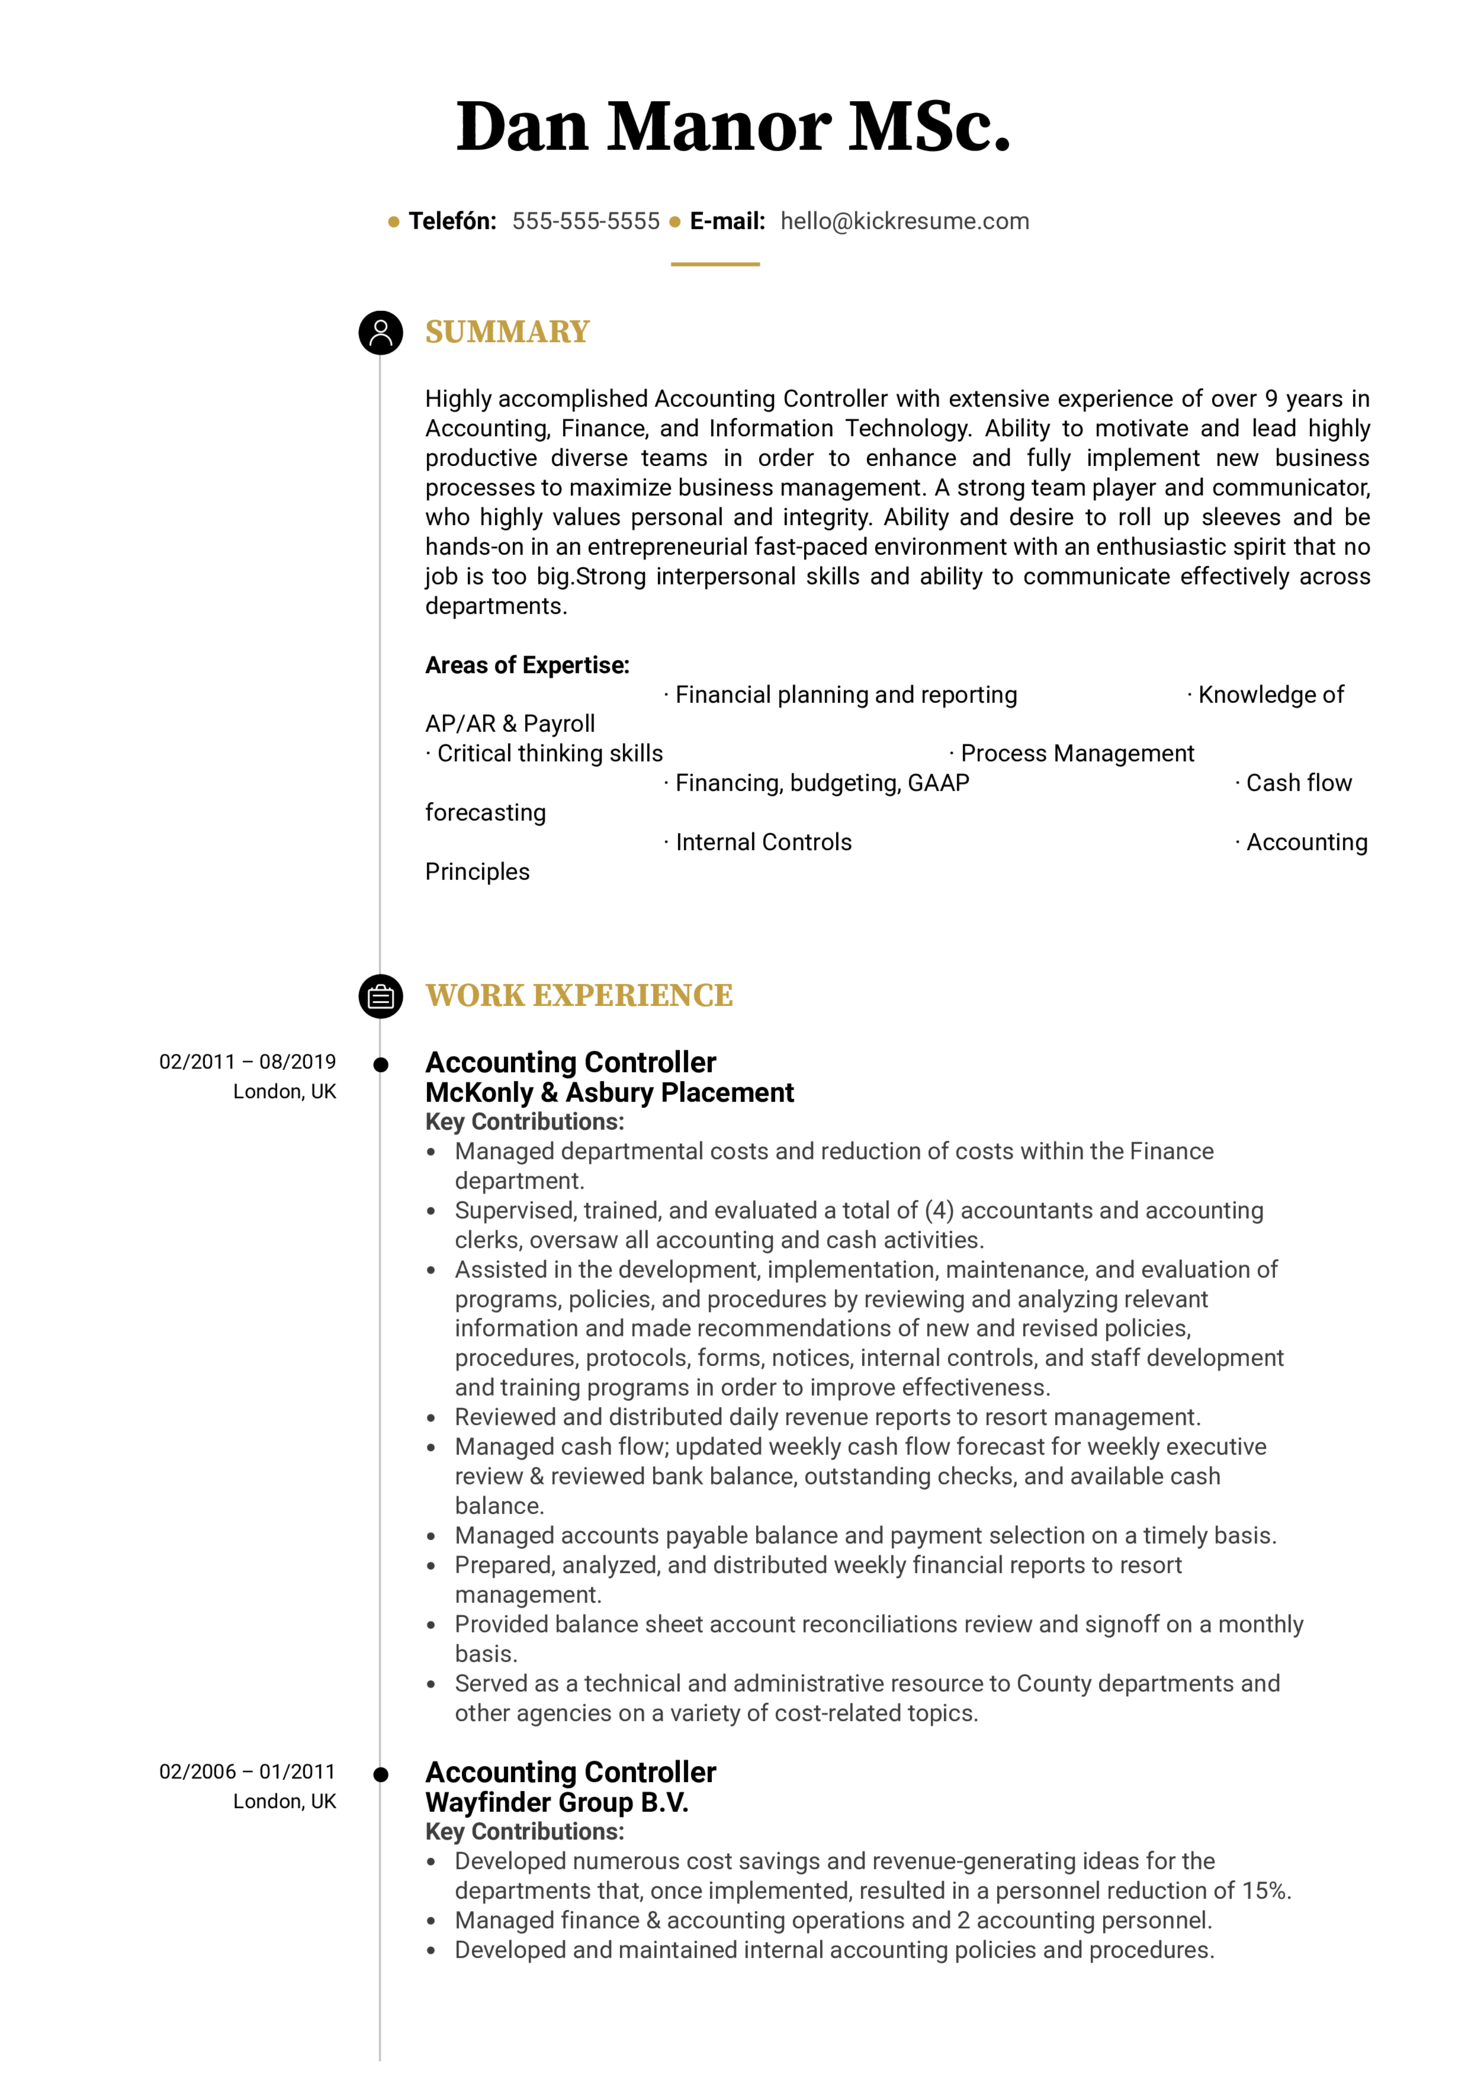 Accounting Controller Resume Sample (Part 1)